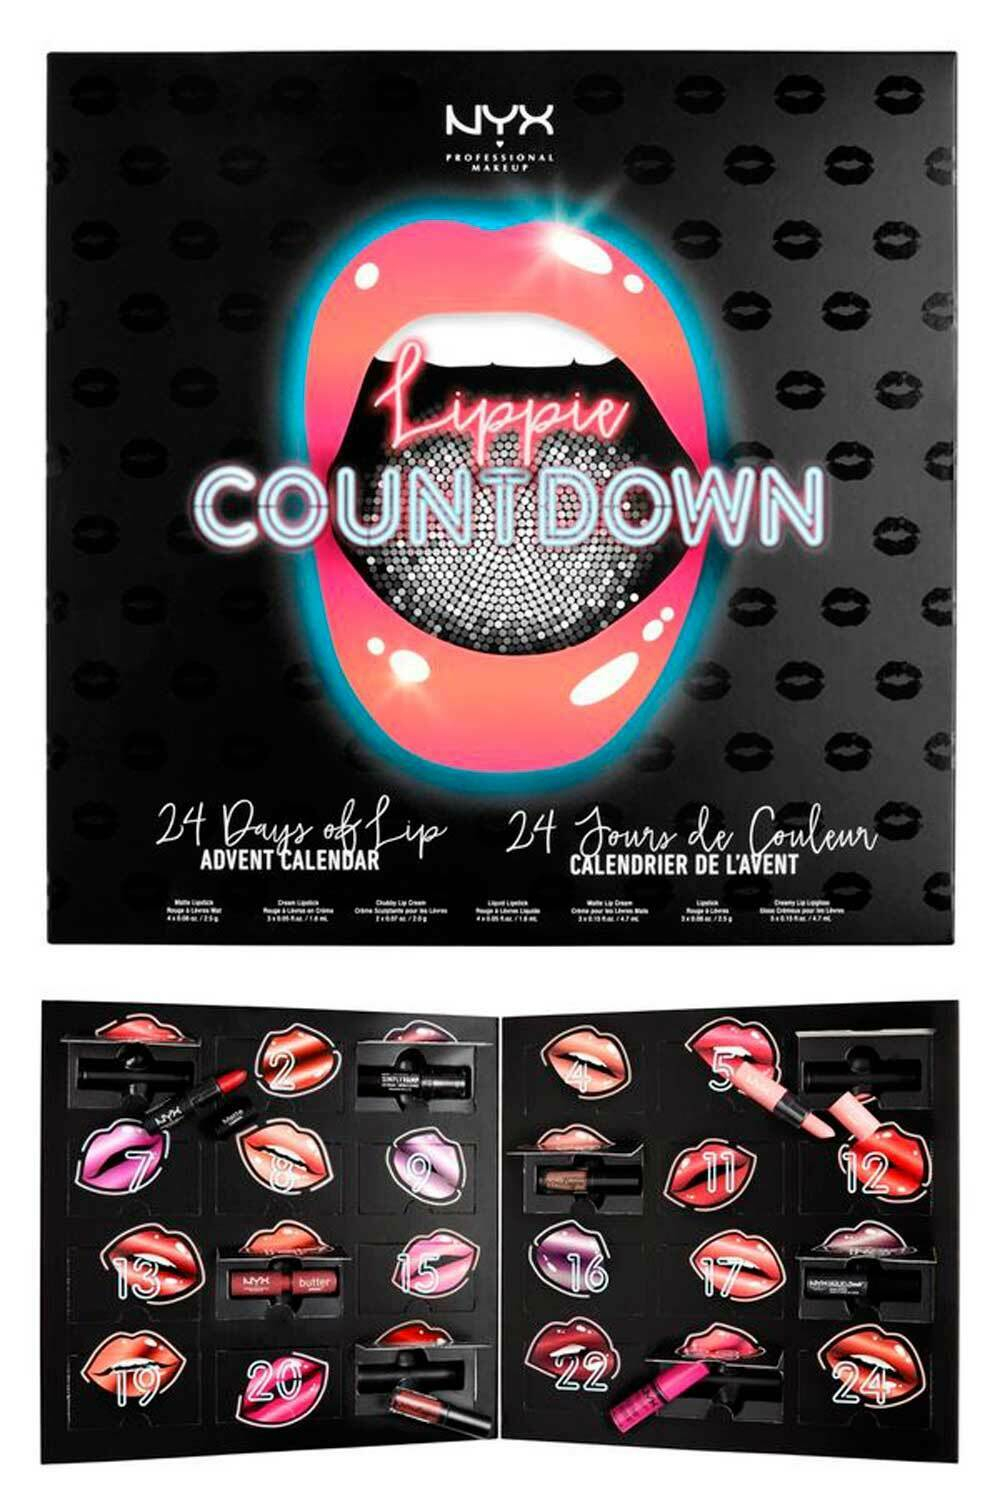 Nyx Lippie Countdown 24 Days Of Lip Advent Calendar for Nyx Countdown 2020